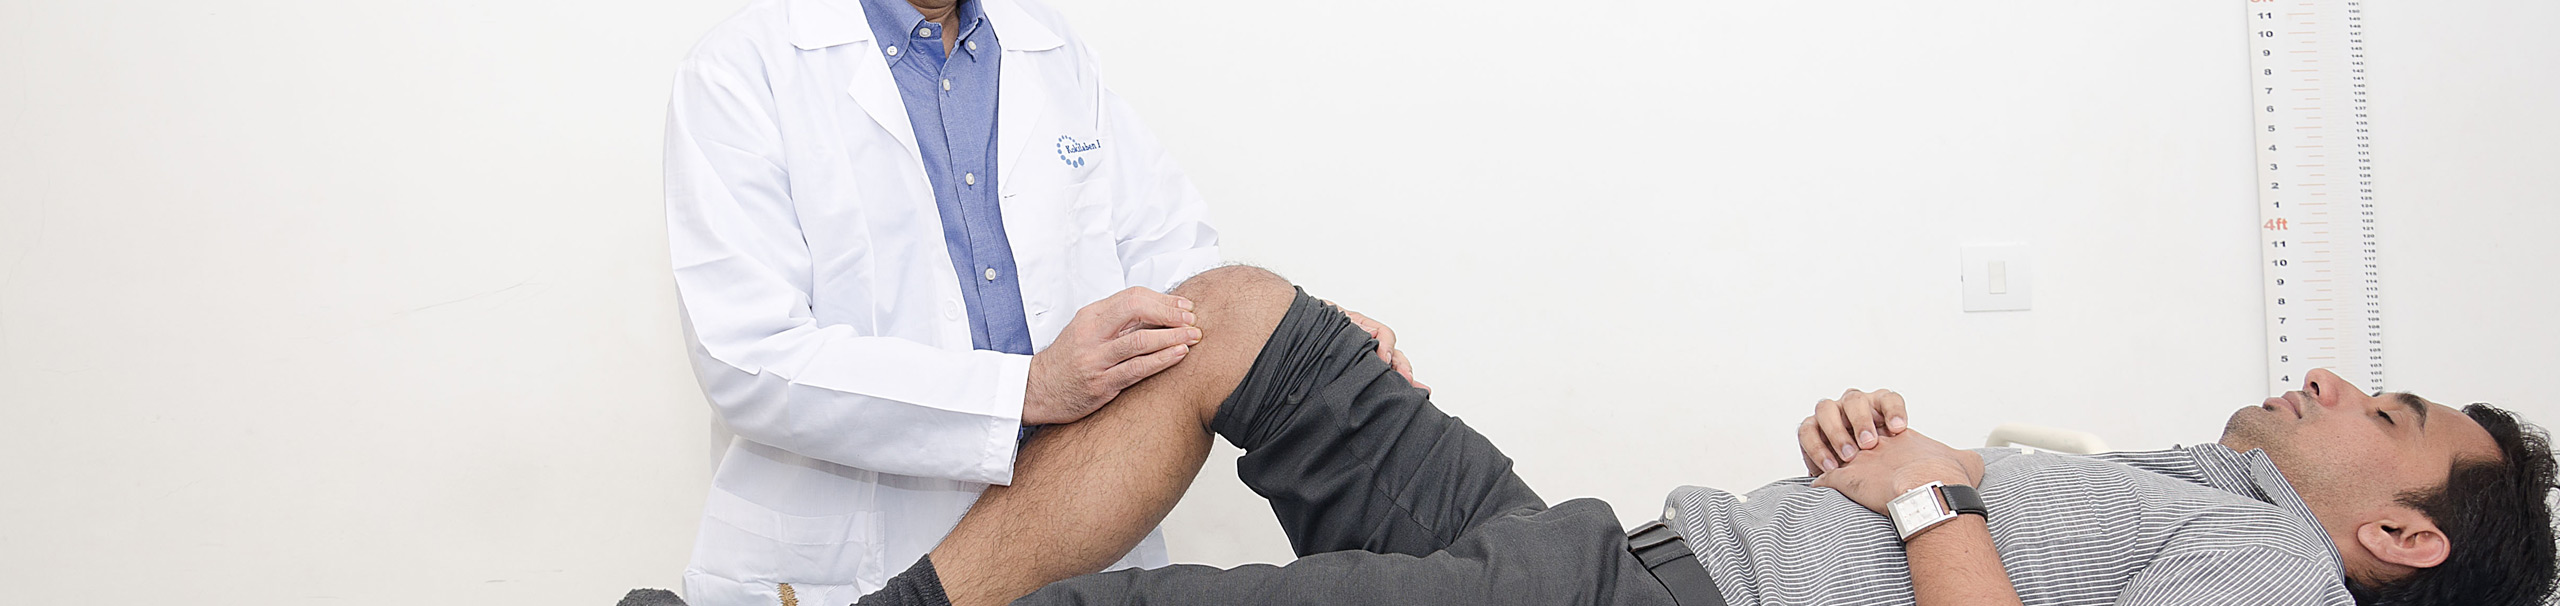 Best Bone & Joint Replacement Surgeries in India – Kokilaben Hospital